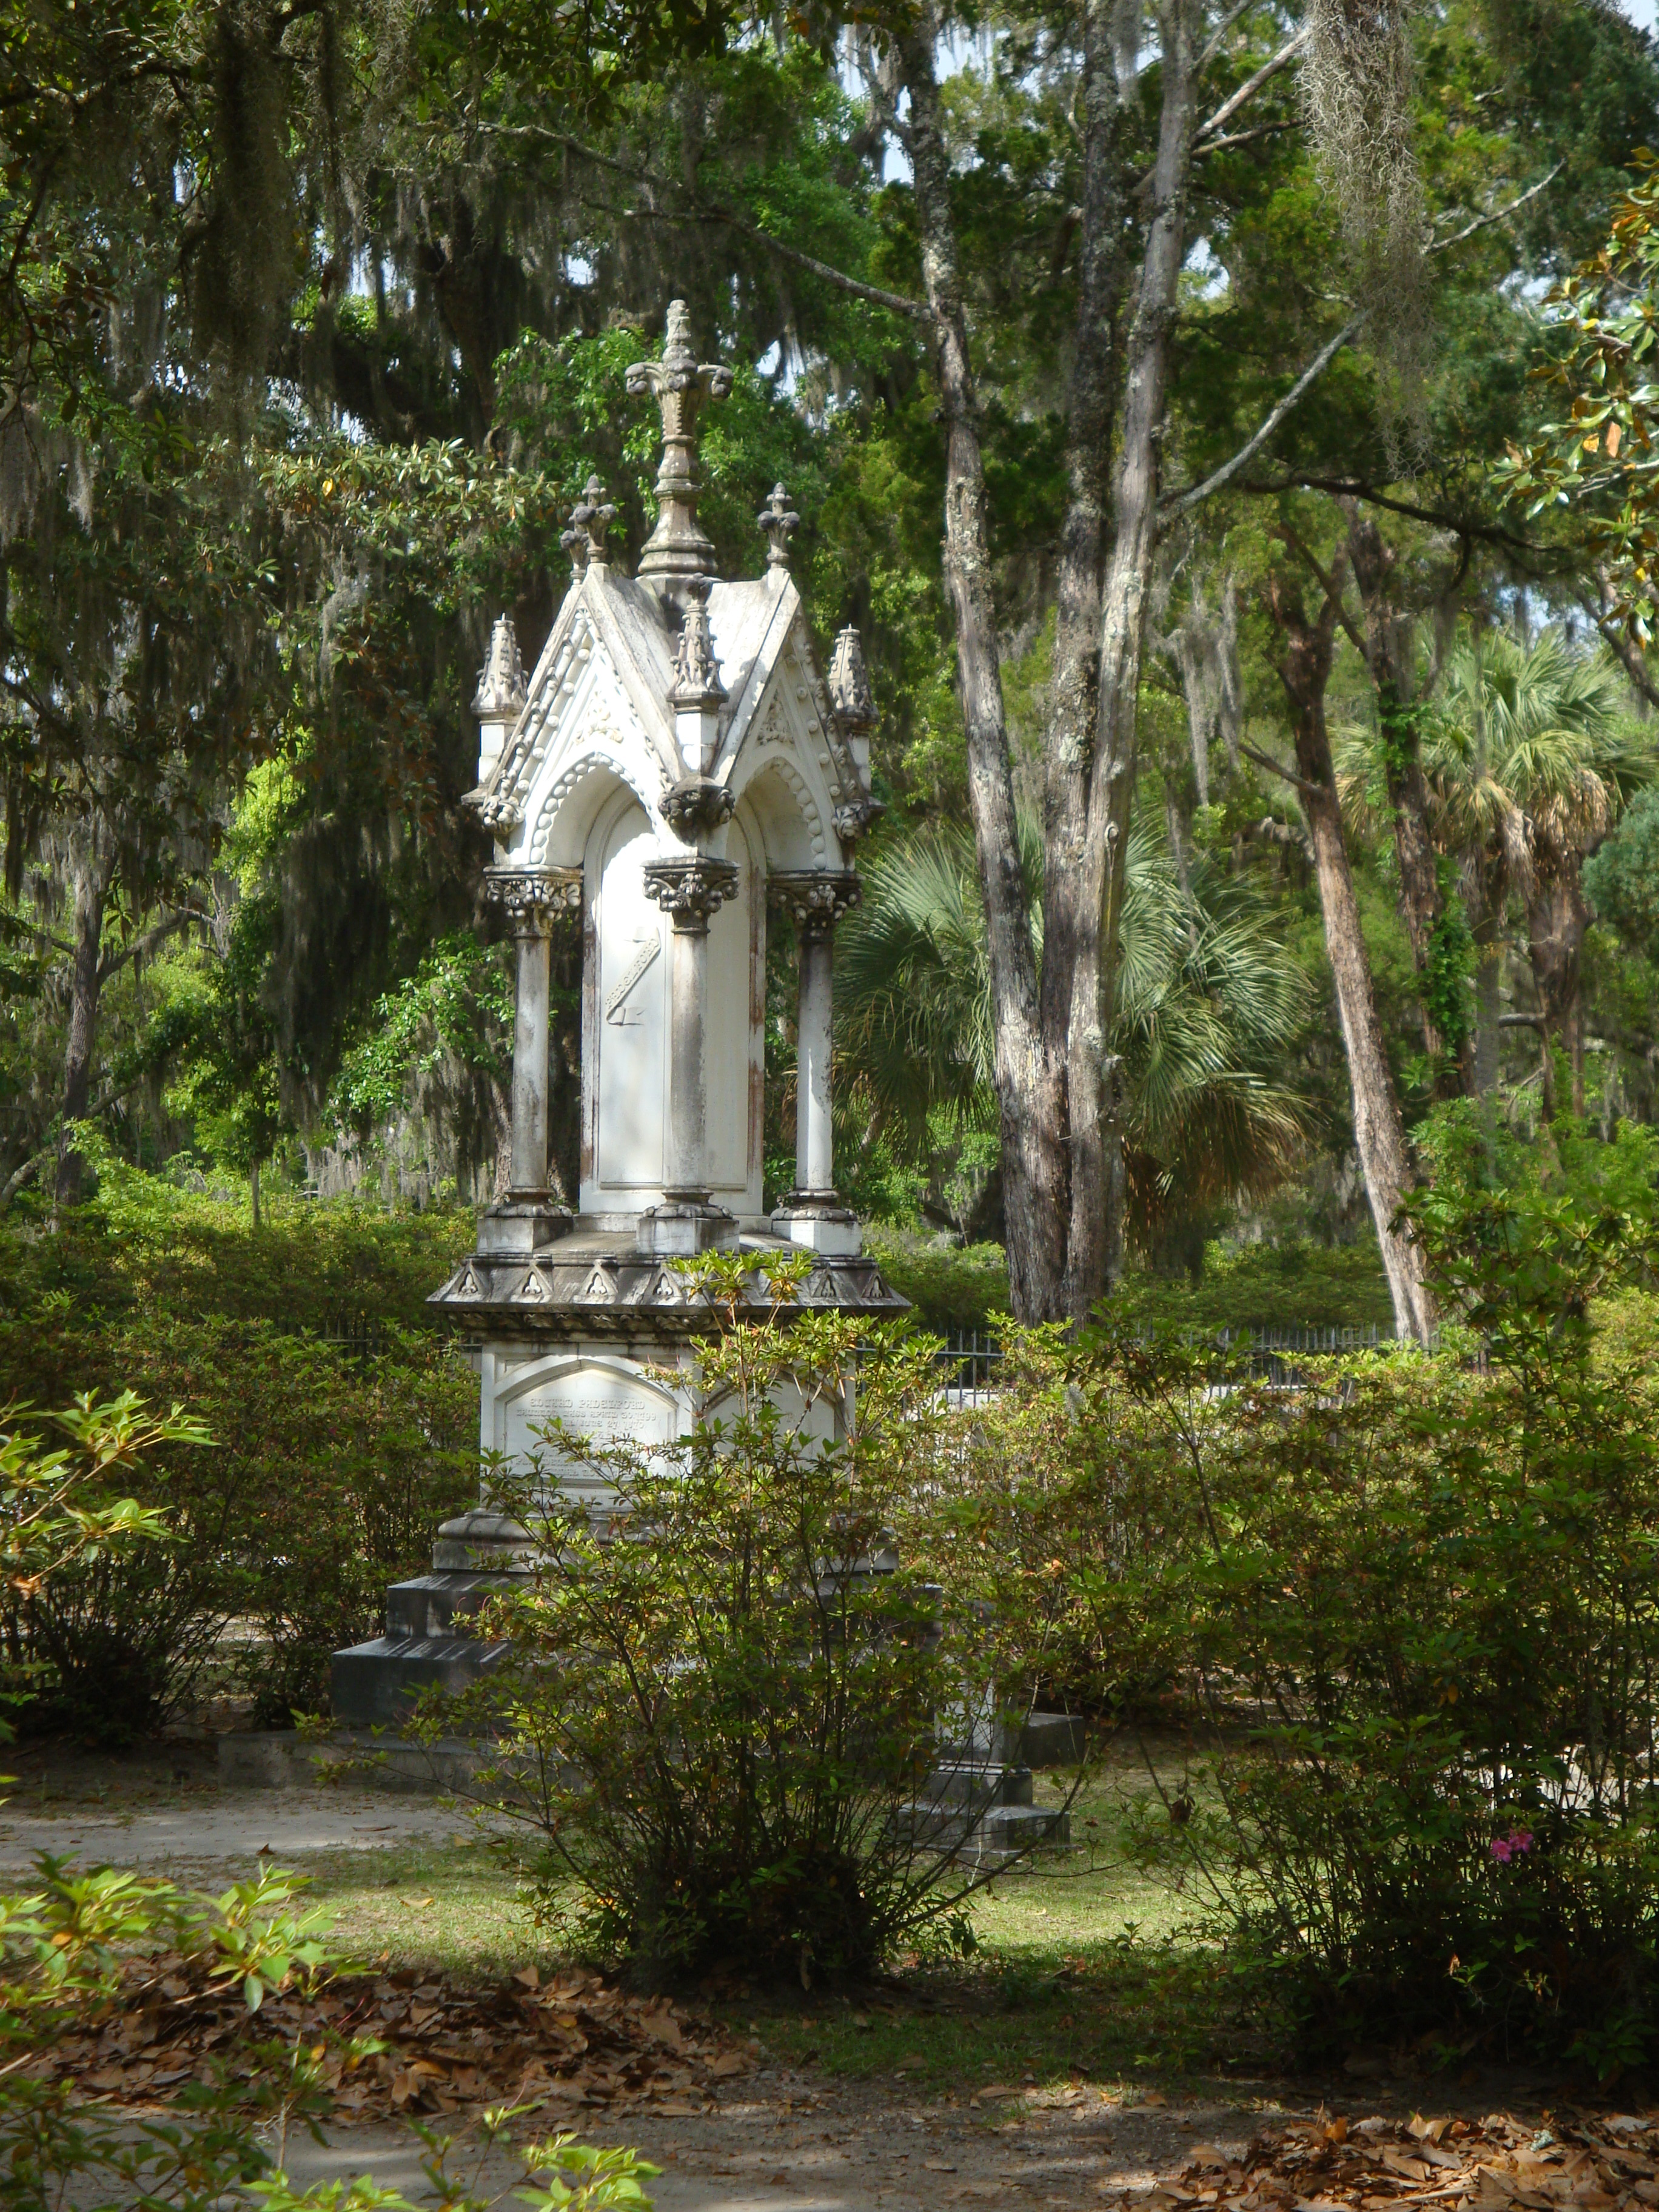 Ellen lindner art creativity blog archive daylight in the garden of peace and serenity for Garden of good and evil statue